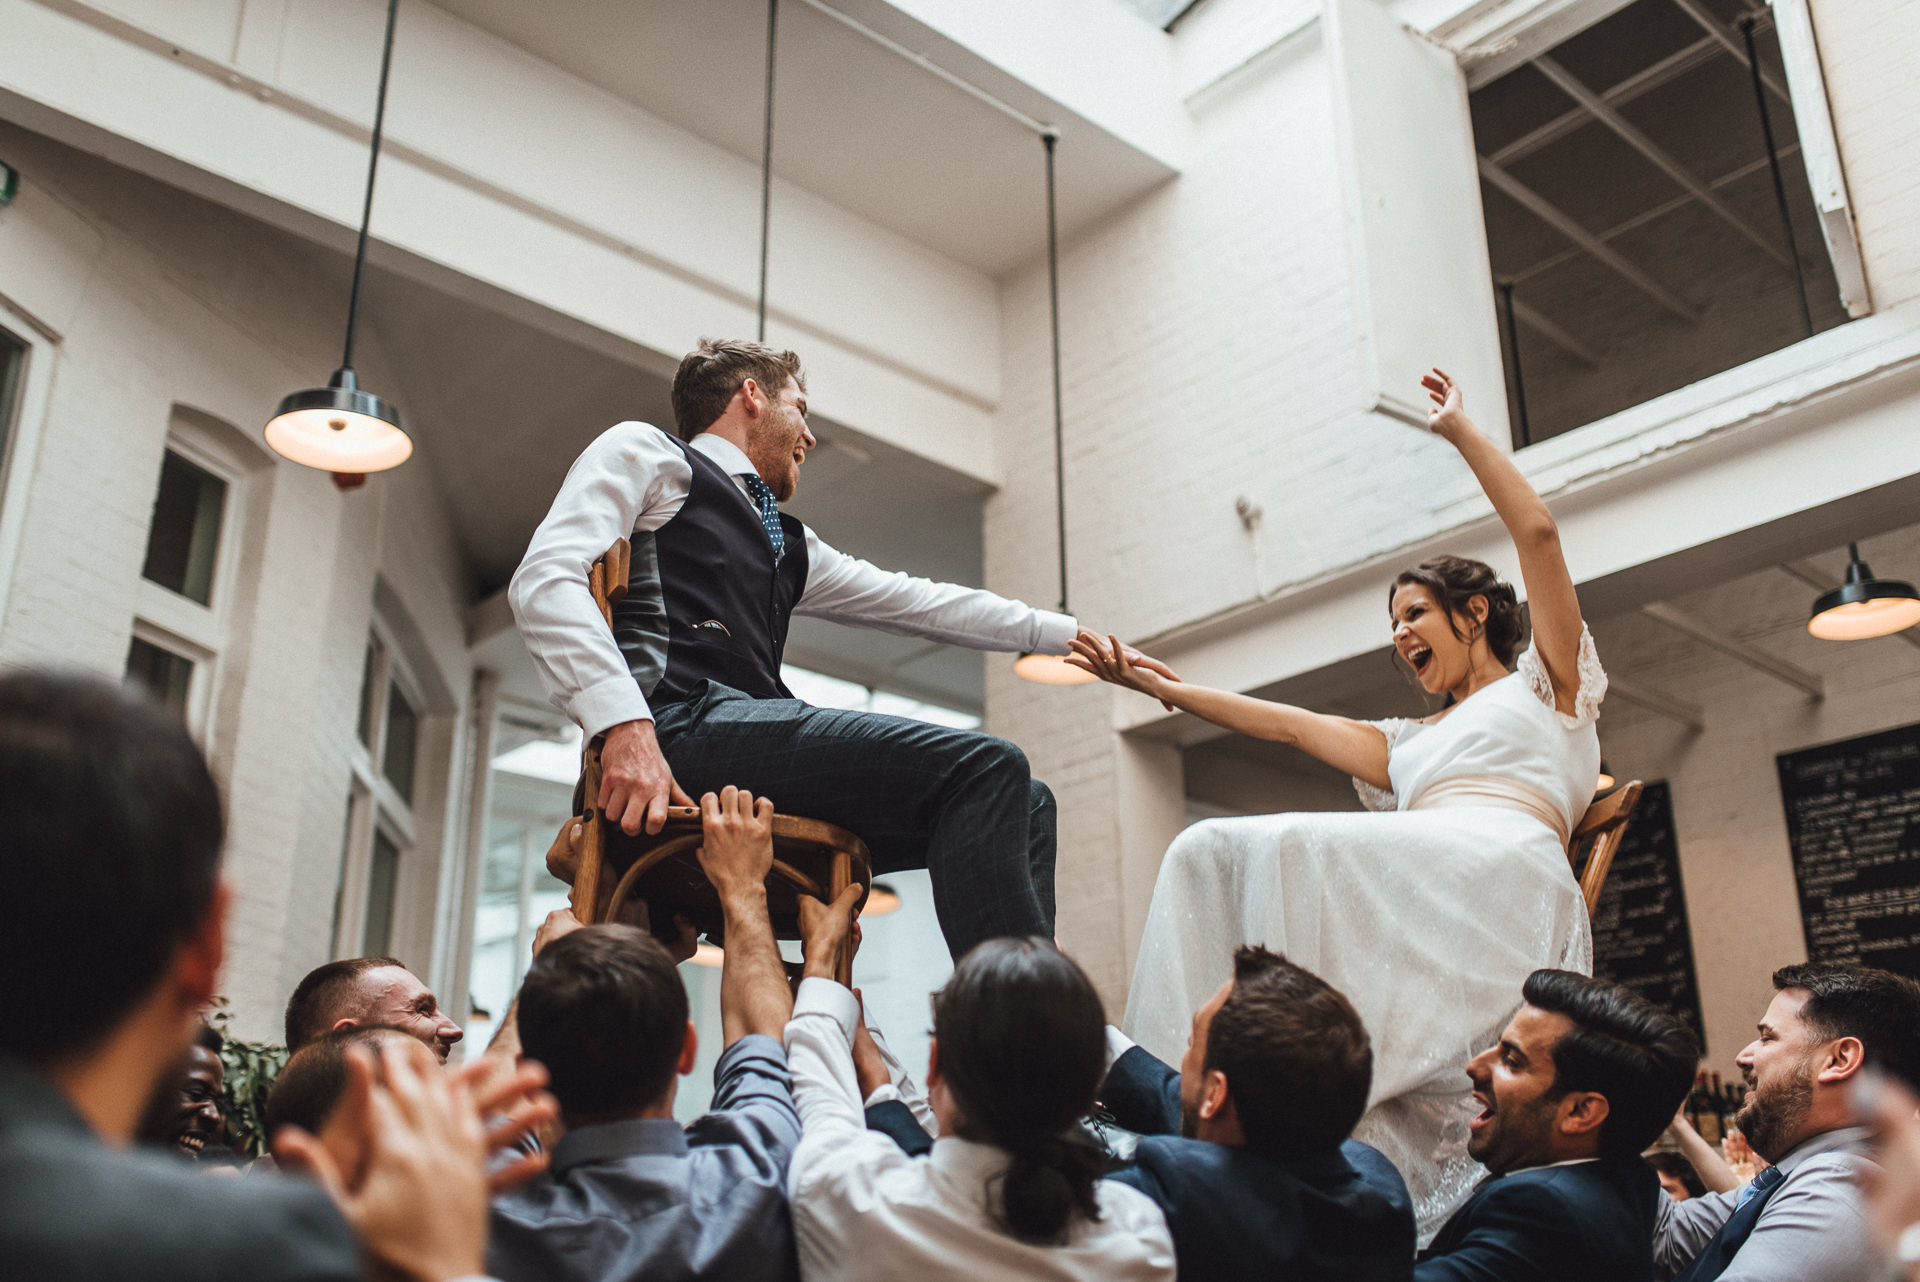 Bride and groom Israeli dancing. Fun alternative jewish wedding photography ideas